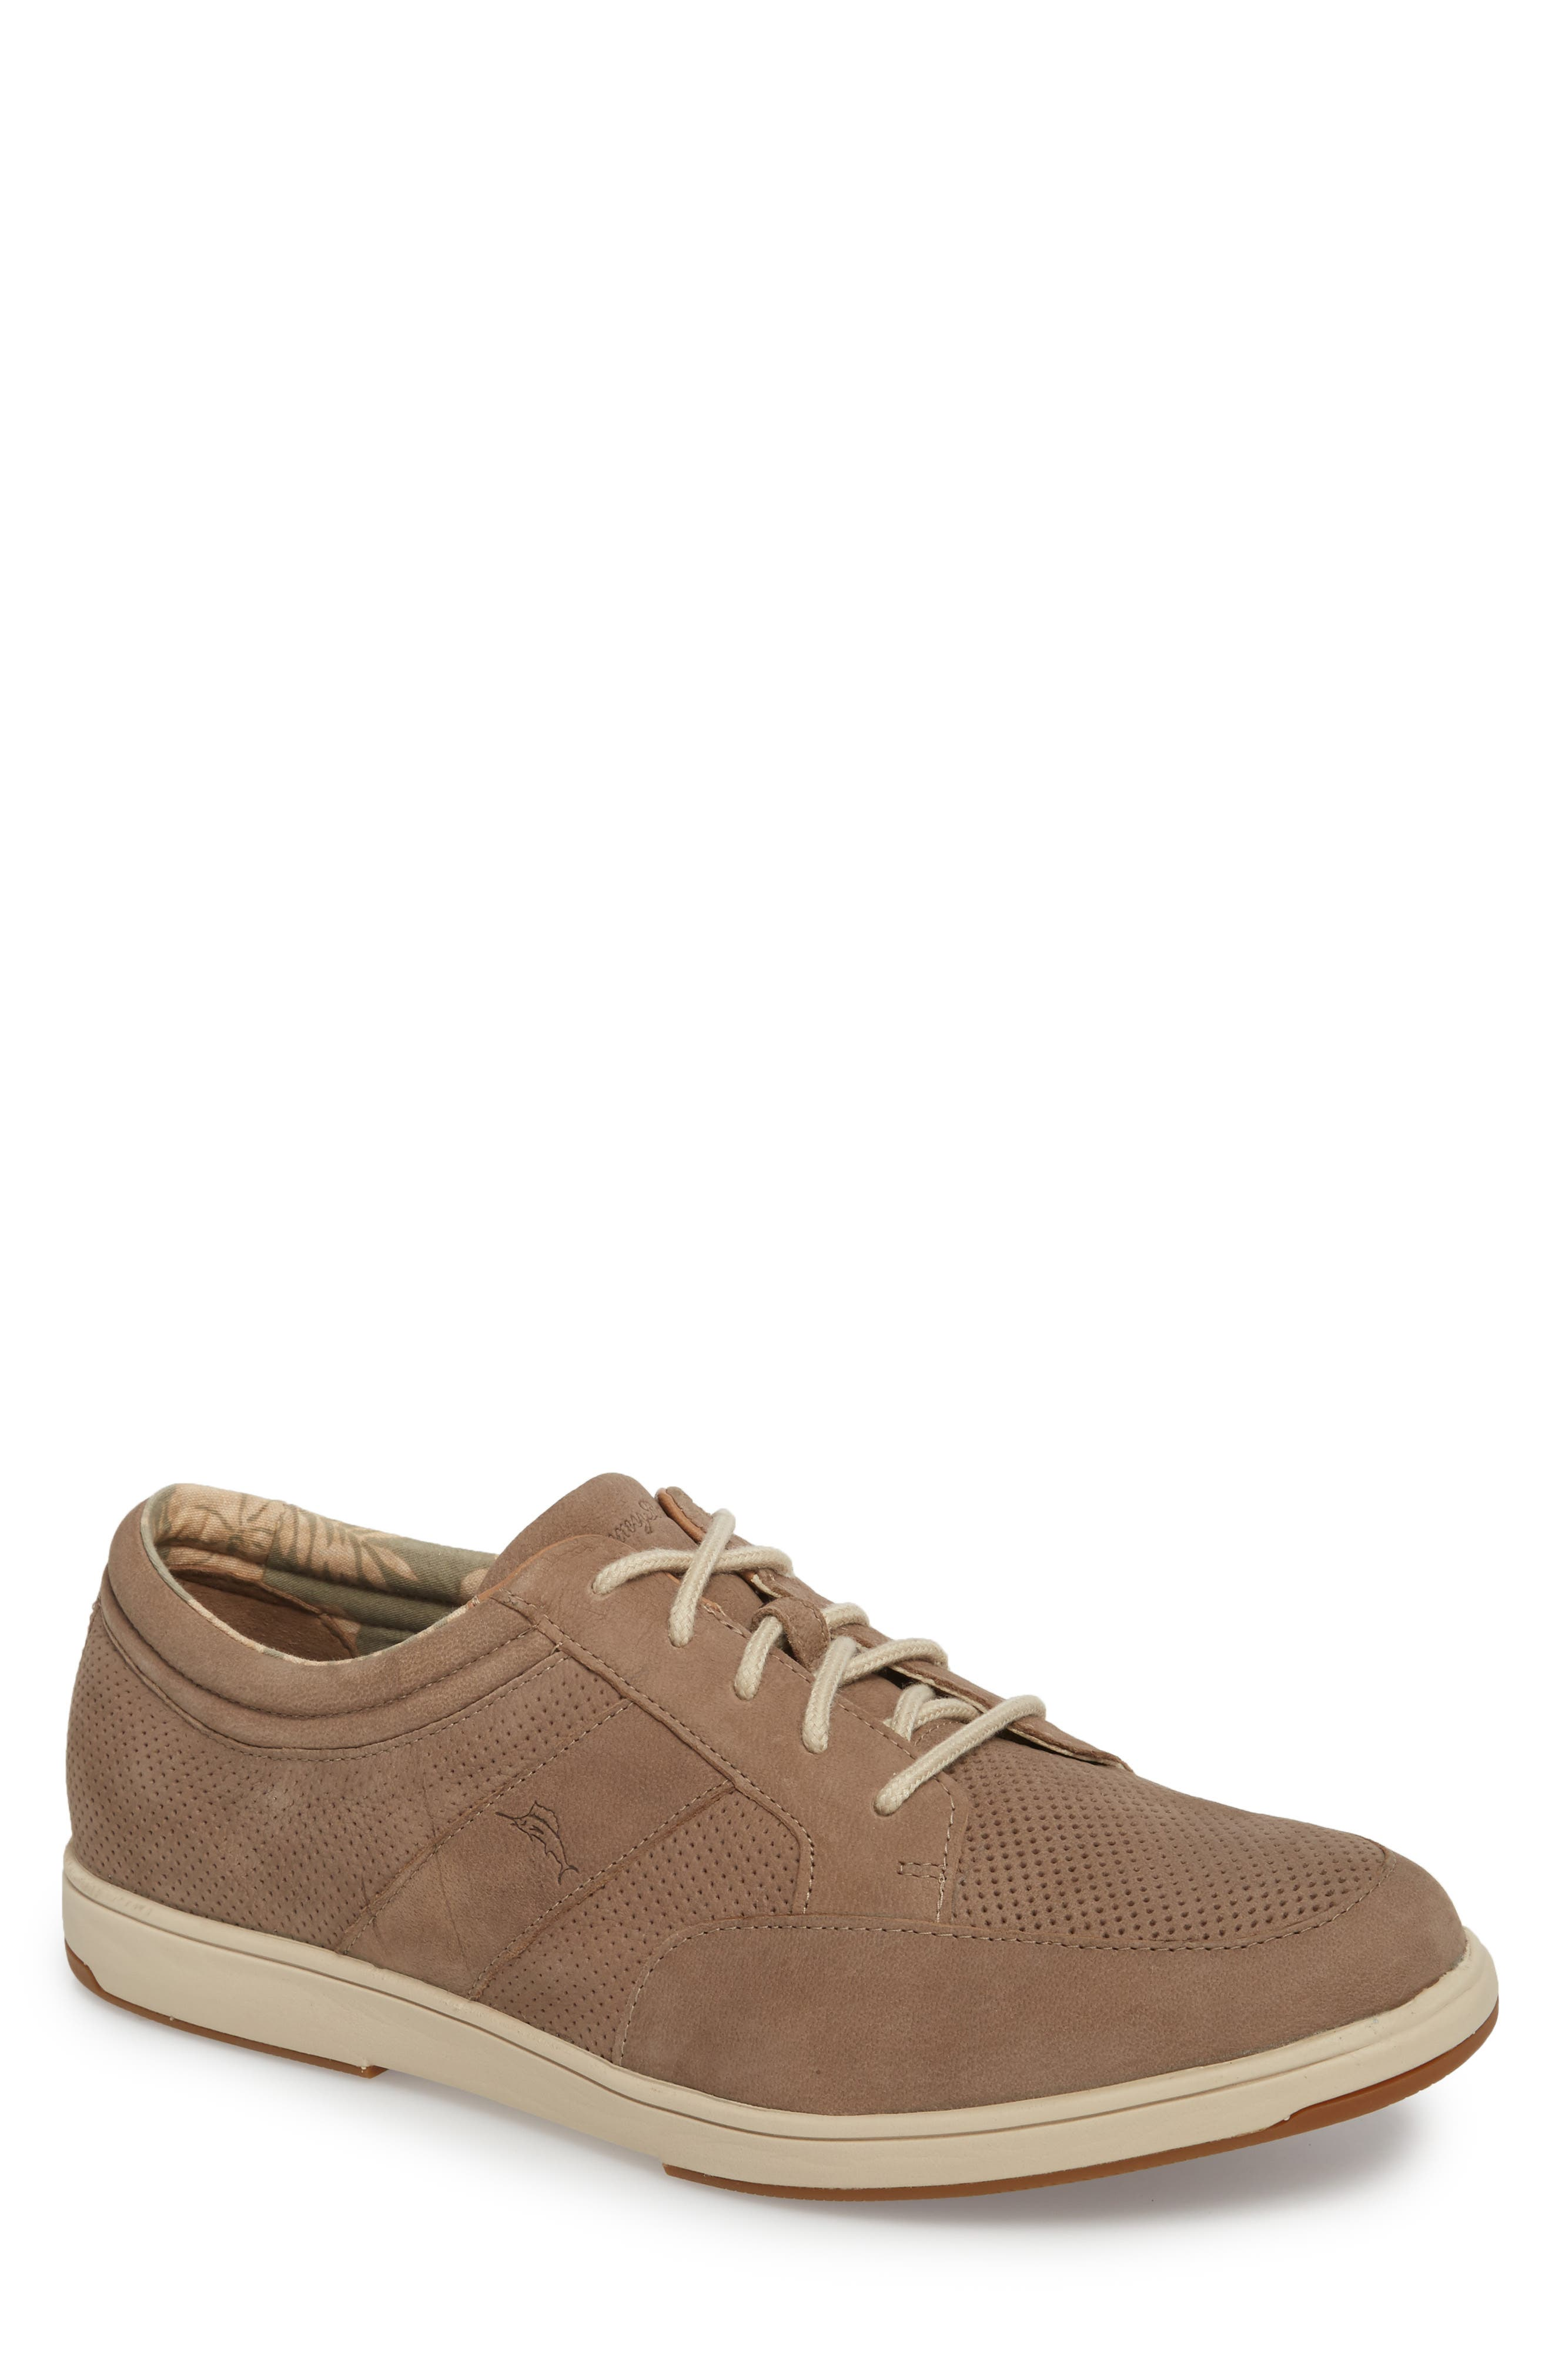 Tommy Bahama Caicos Authentic Low Top Sneaker (Men)